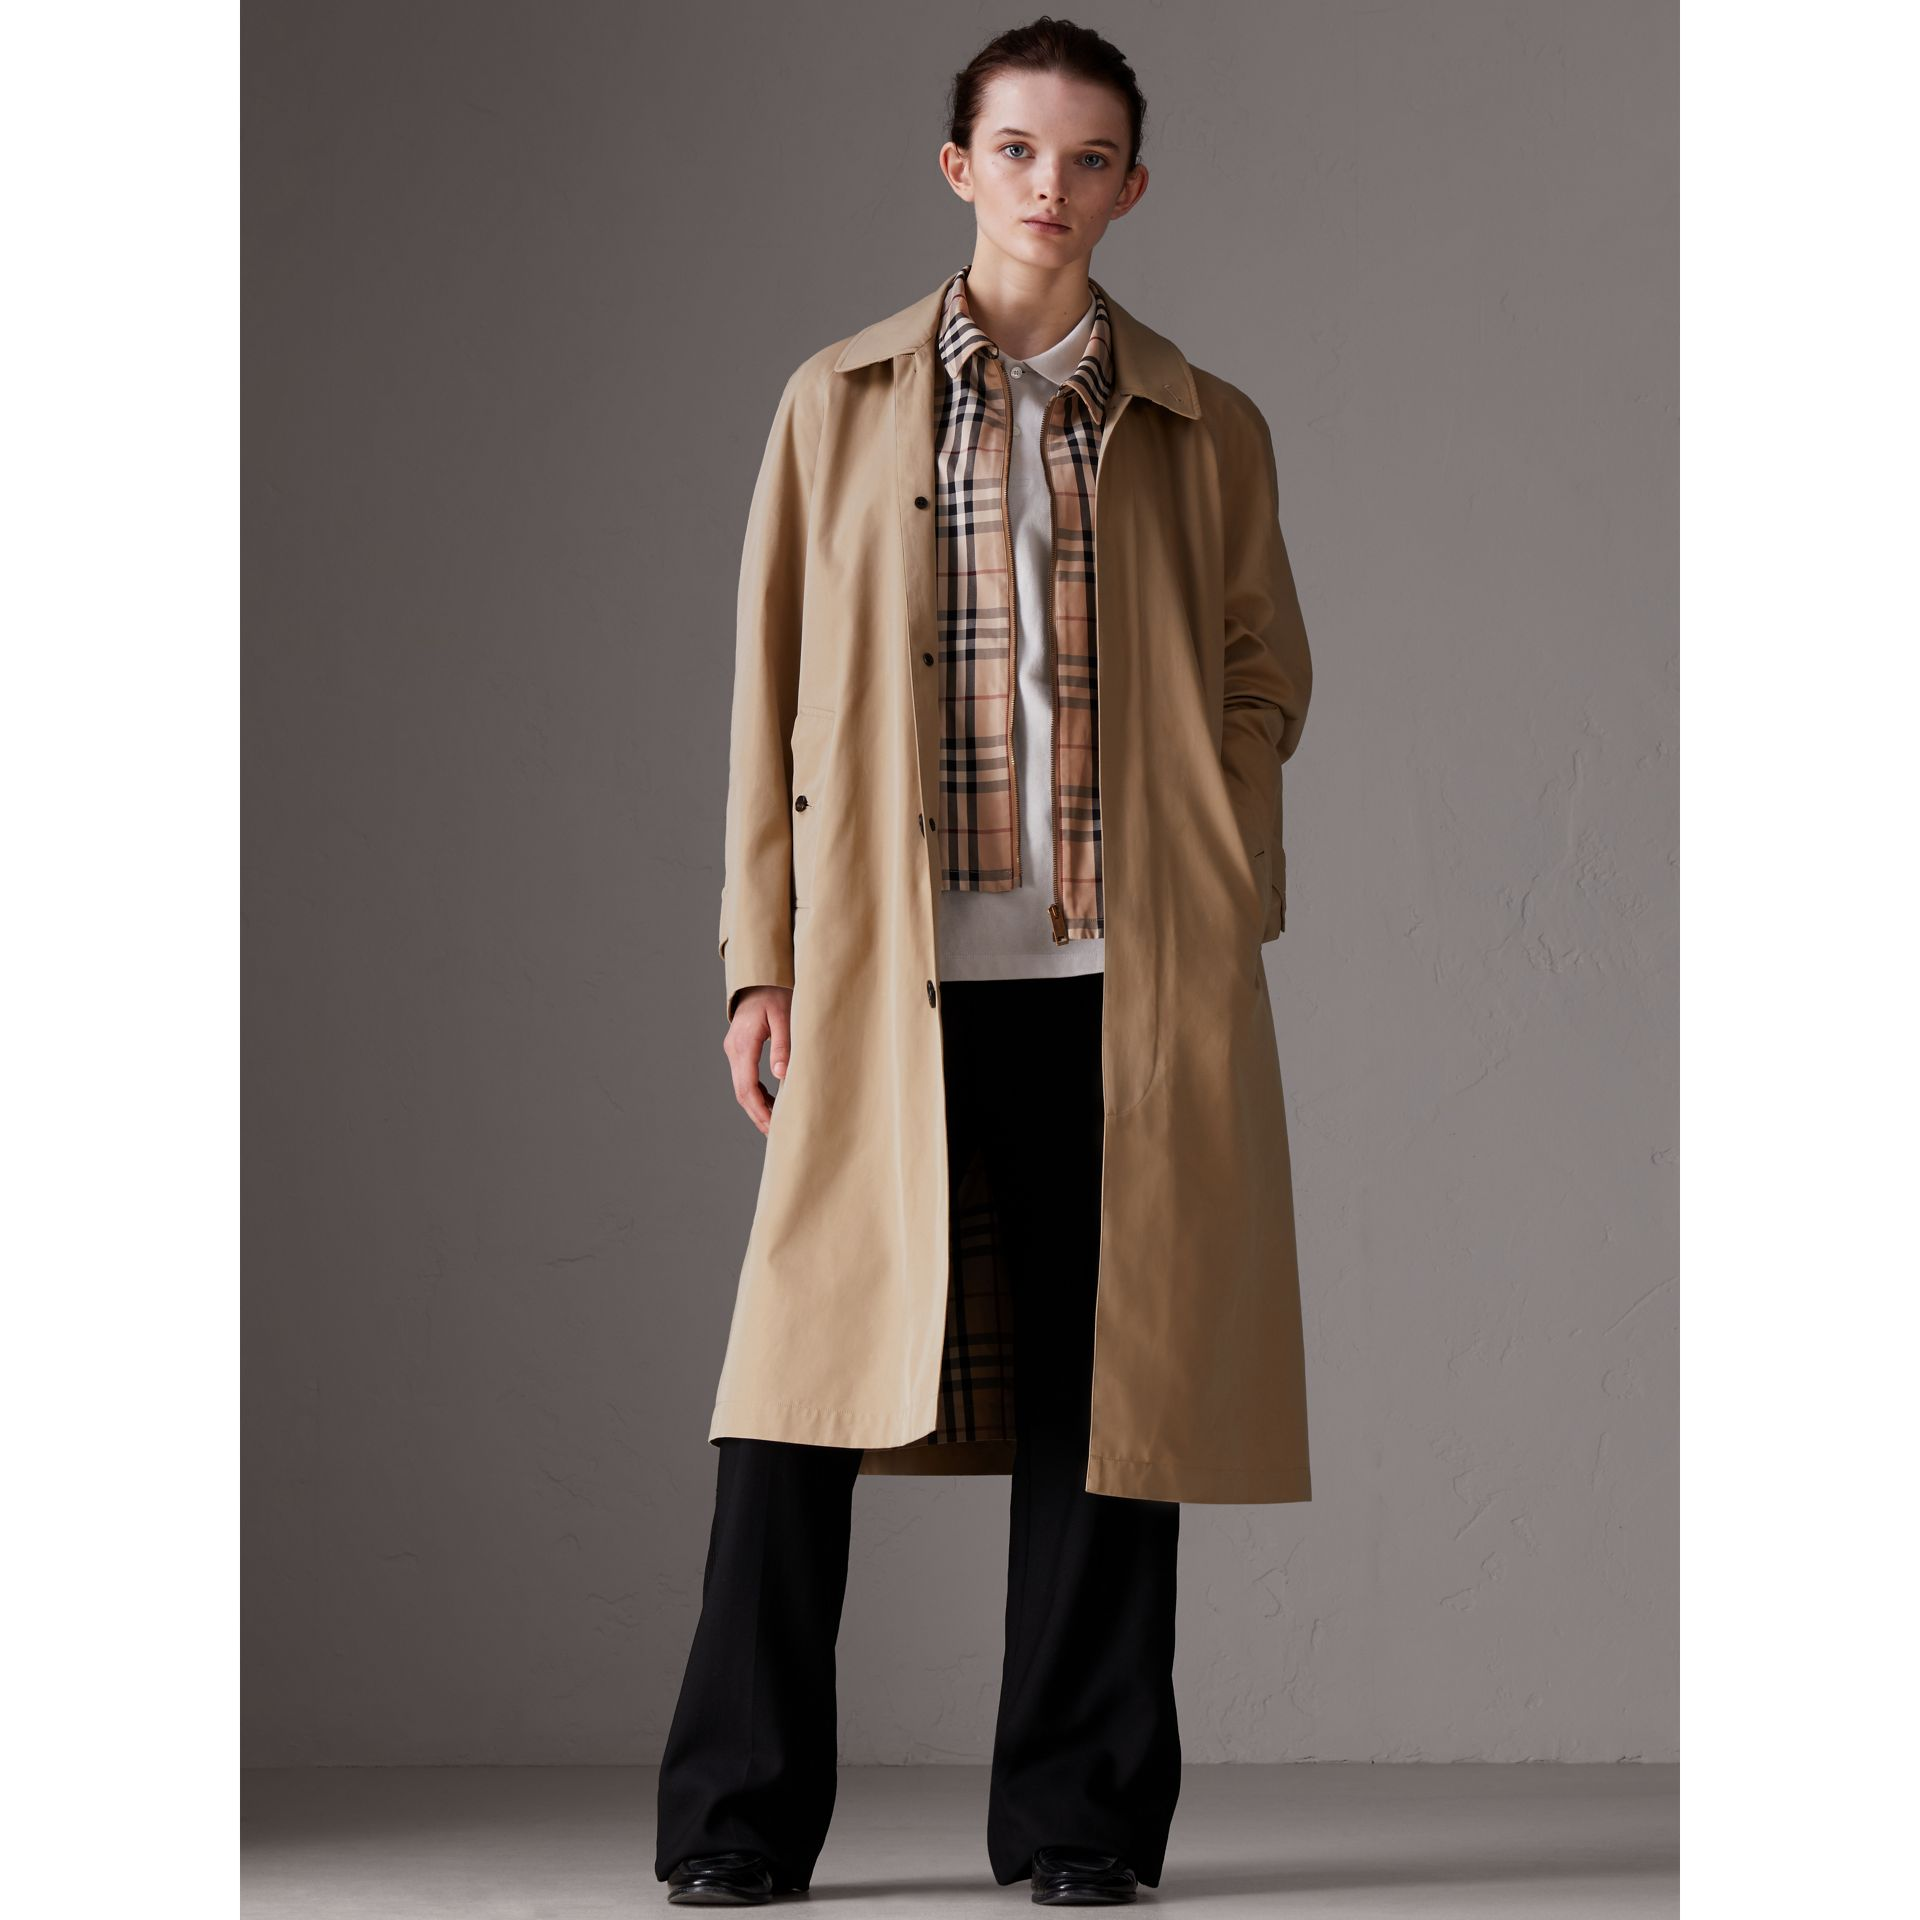 Gosha x Burberry Reconstructed Car Coat in Honey | Burberry United Kingdom - gallery image 3